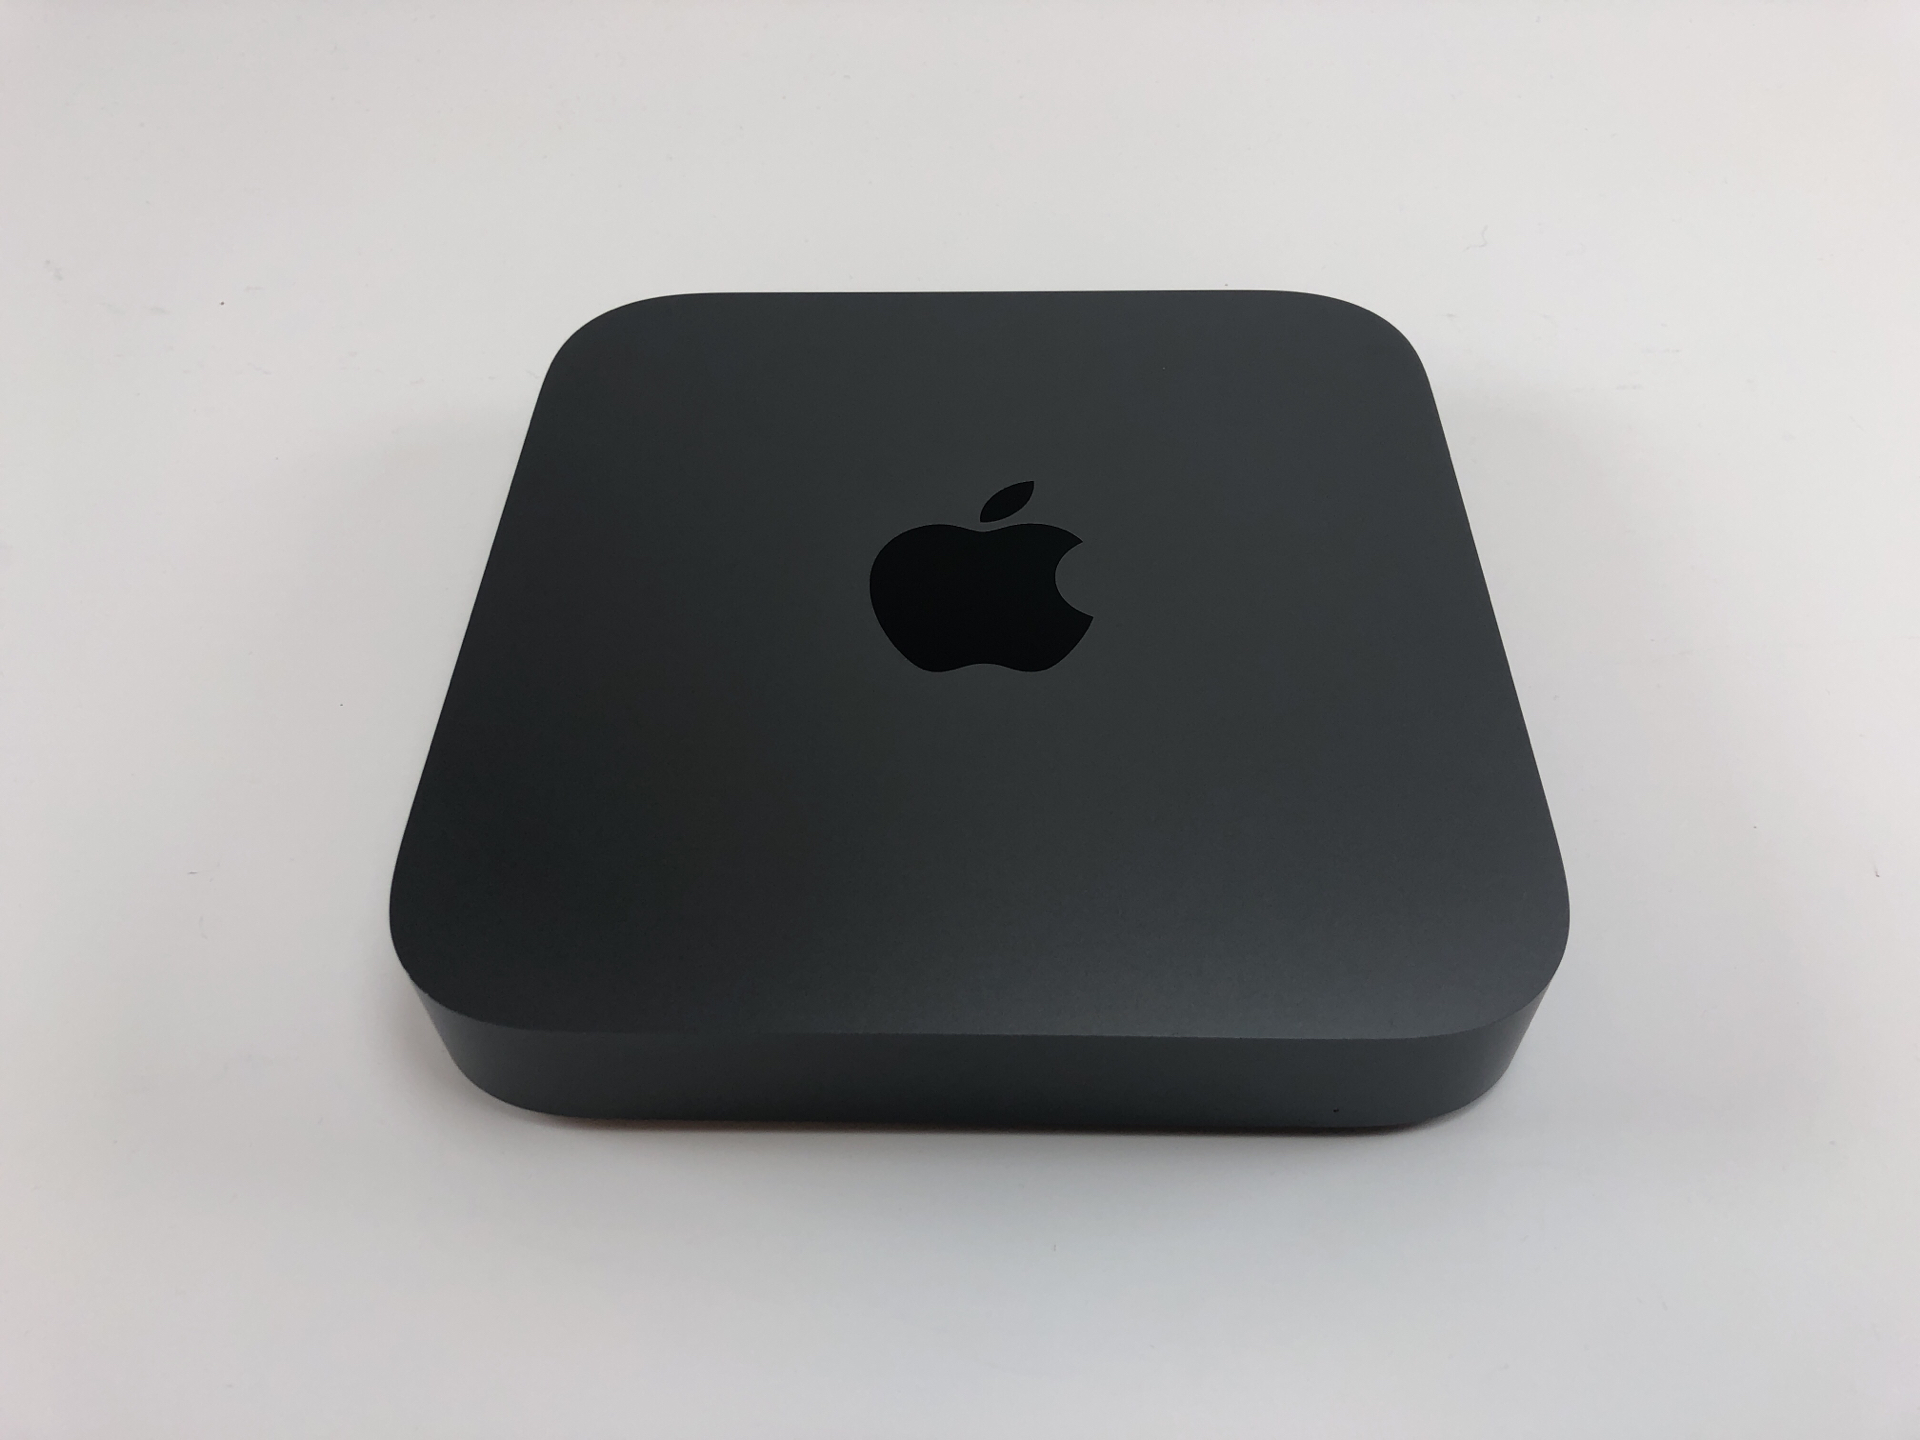 Mac Mini Late 2018 (Intel Quad-Core i3 3.6 GHz 64 GB RAM 128 GB SSD), Intel Quad-Core i3 3.6 GHz, 64 GB RAM, 128 GB SSD, Bild 2